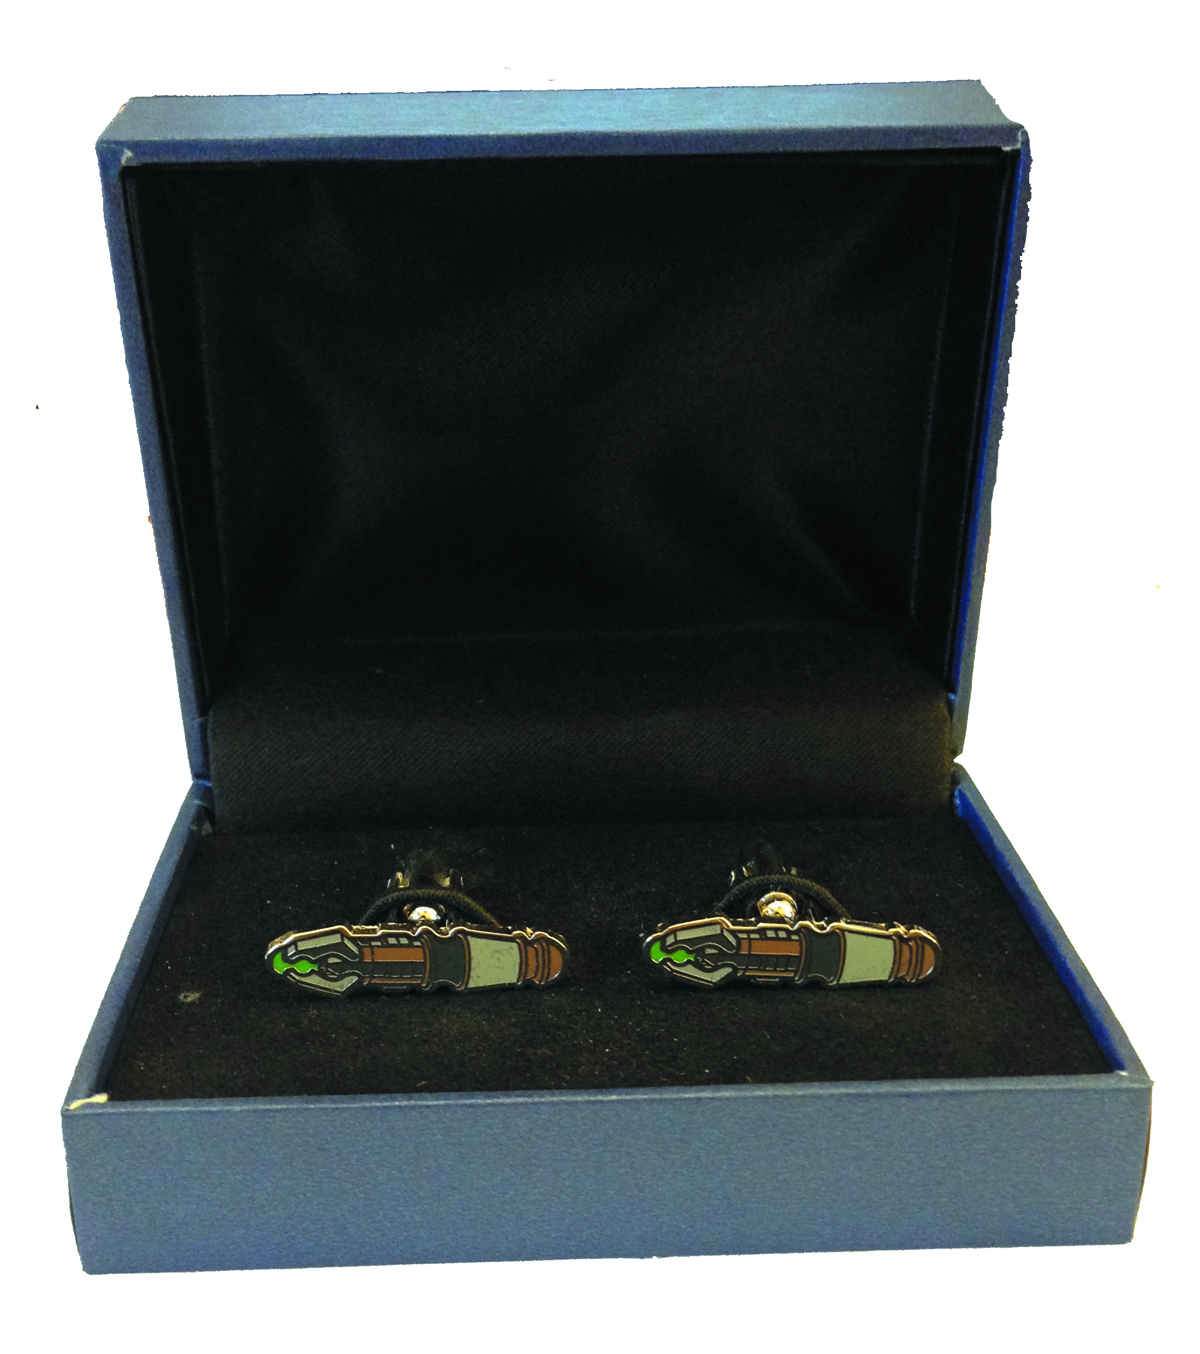 DOCTOR WHO SONIC SCREWDRIVER CUFFLINKS